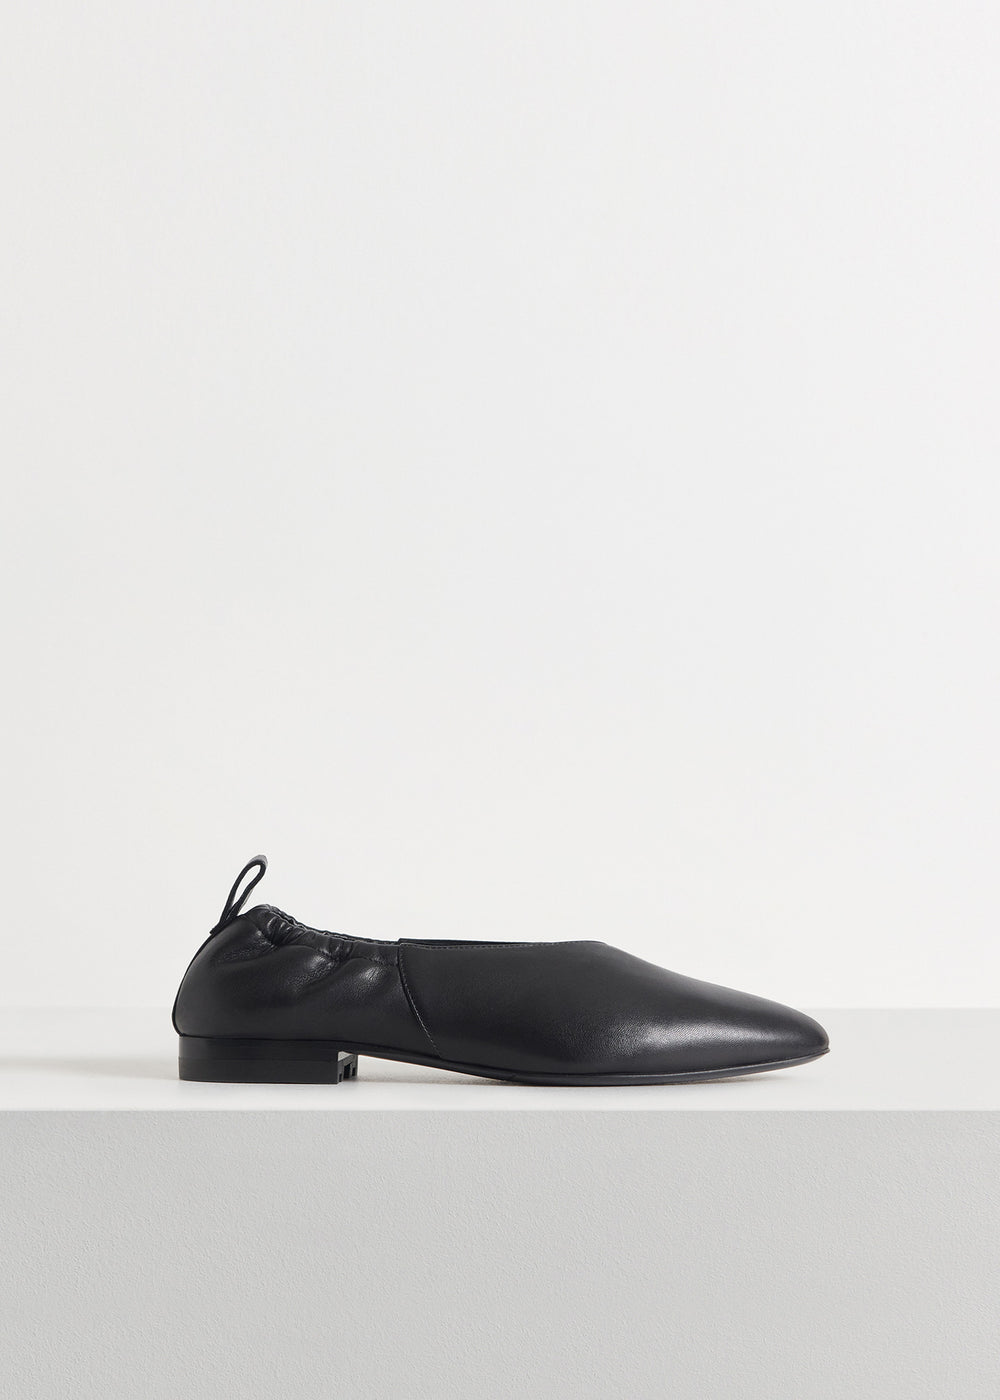 Ballet Flat in Smooth Leather - Black - CO